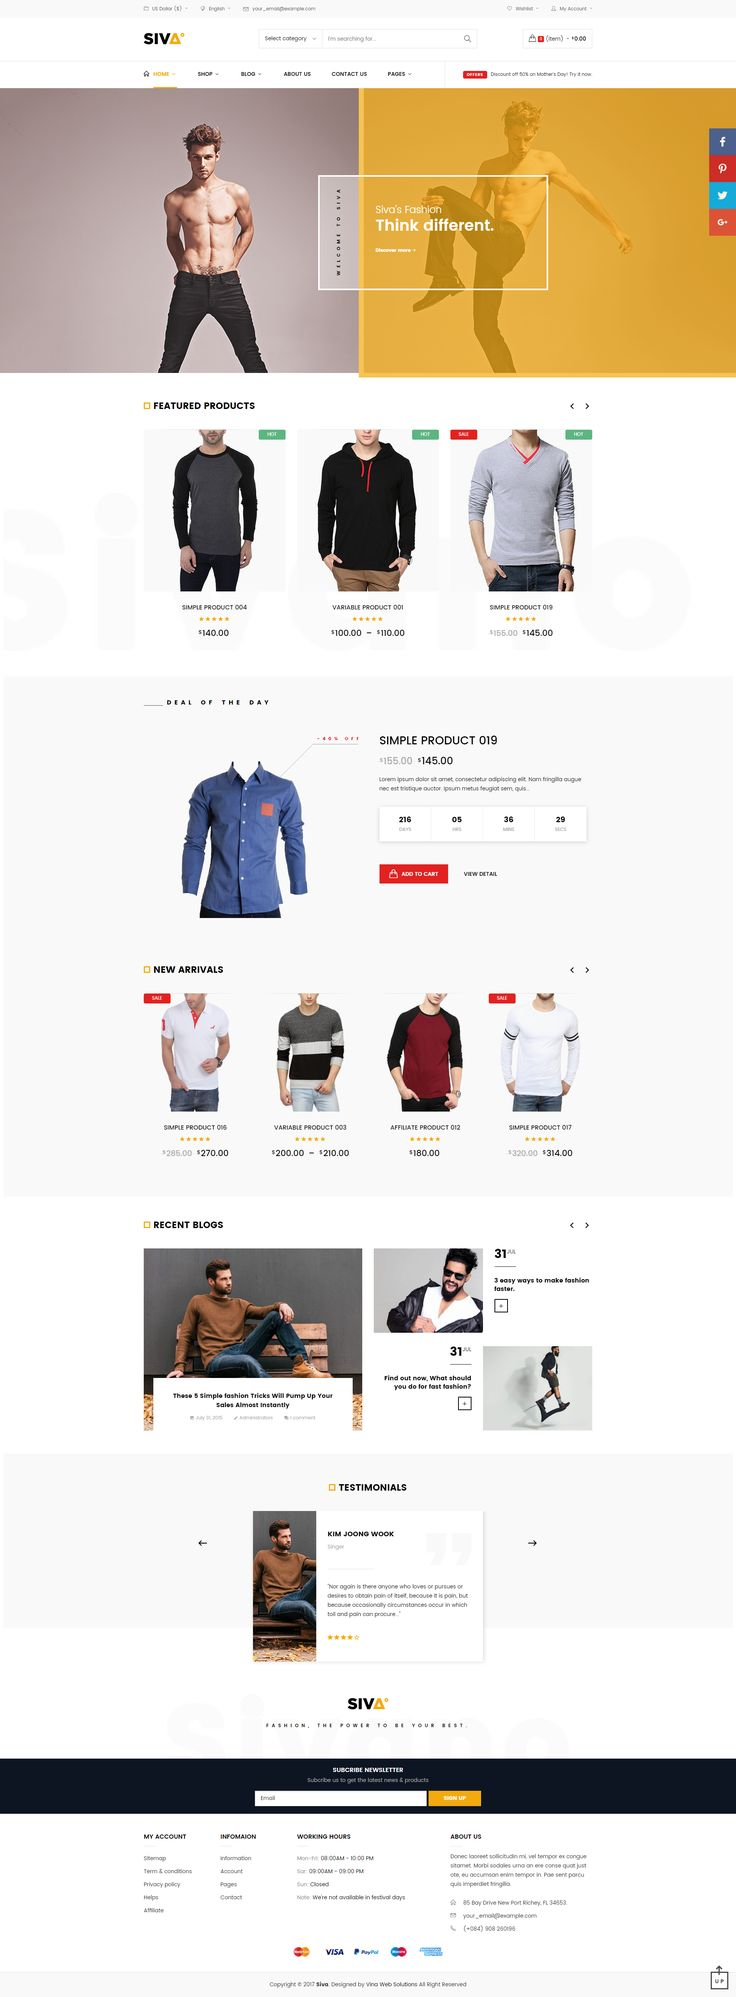 VG Sivais a creative, minimalist responsive#WooCommerce #WordPress themespecifically designed to adapt its display according to the device in use. It's packed with great features you can customize according to your brand. #design #wesite #theme